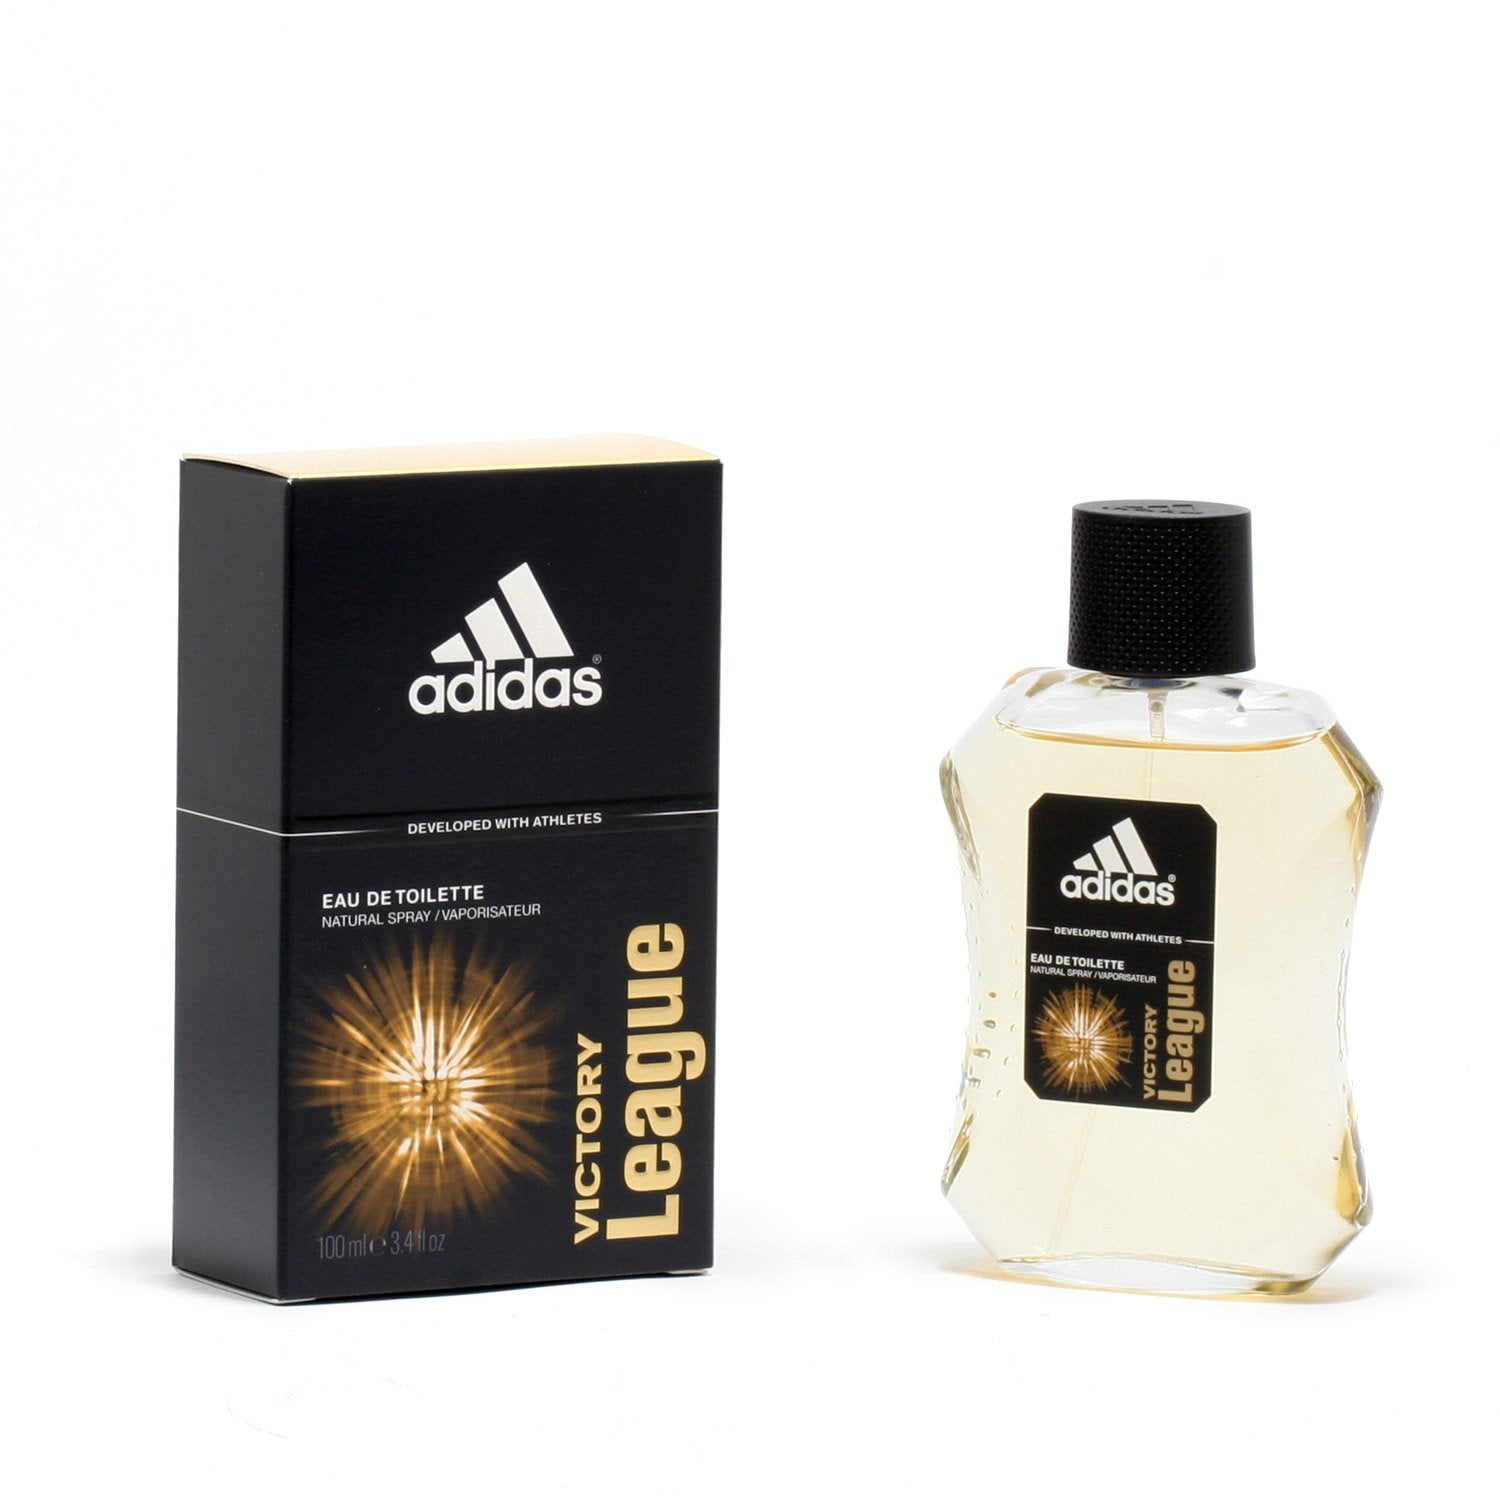 Cologne - ADIDAS VICTORY LEAGUE FOR MEN - EAU DE TOILETTE SPRAY, 3.4 OZ